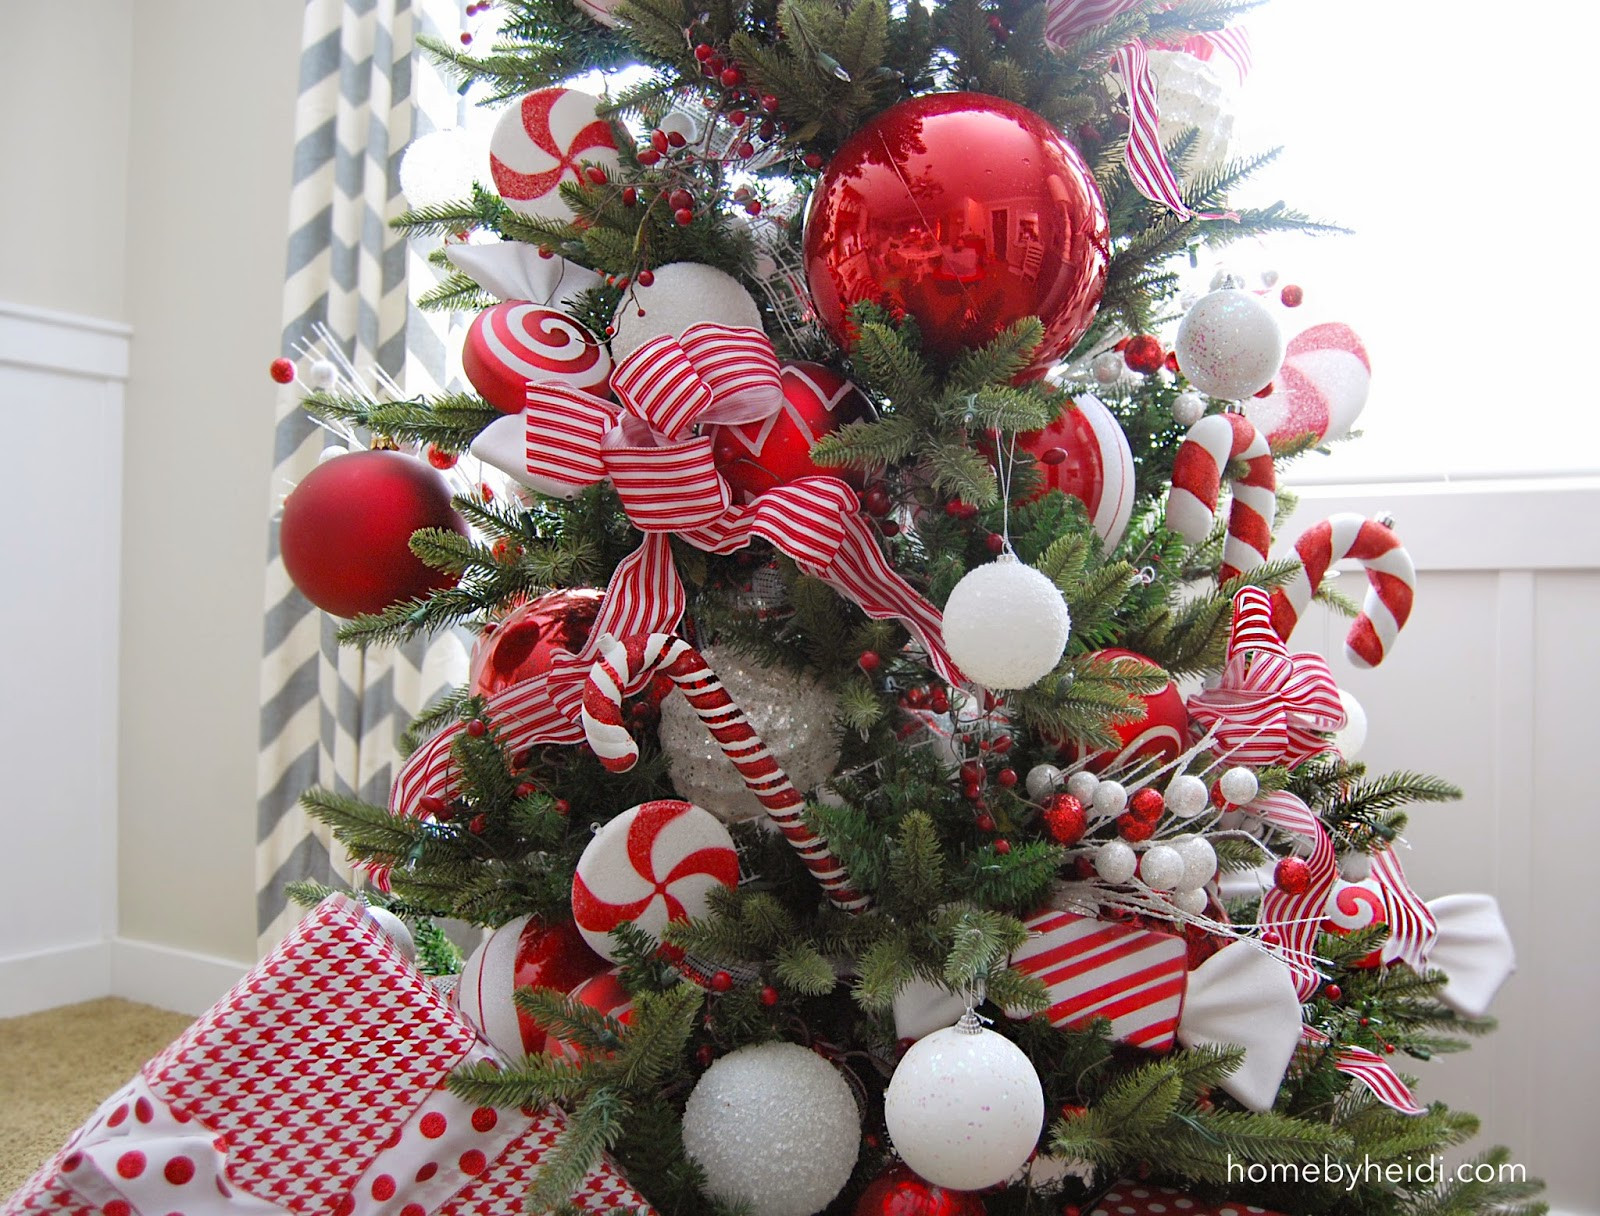 Candy Canes On Christmas Tree  Home By Heidi Candy Cane Christmas Tree